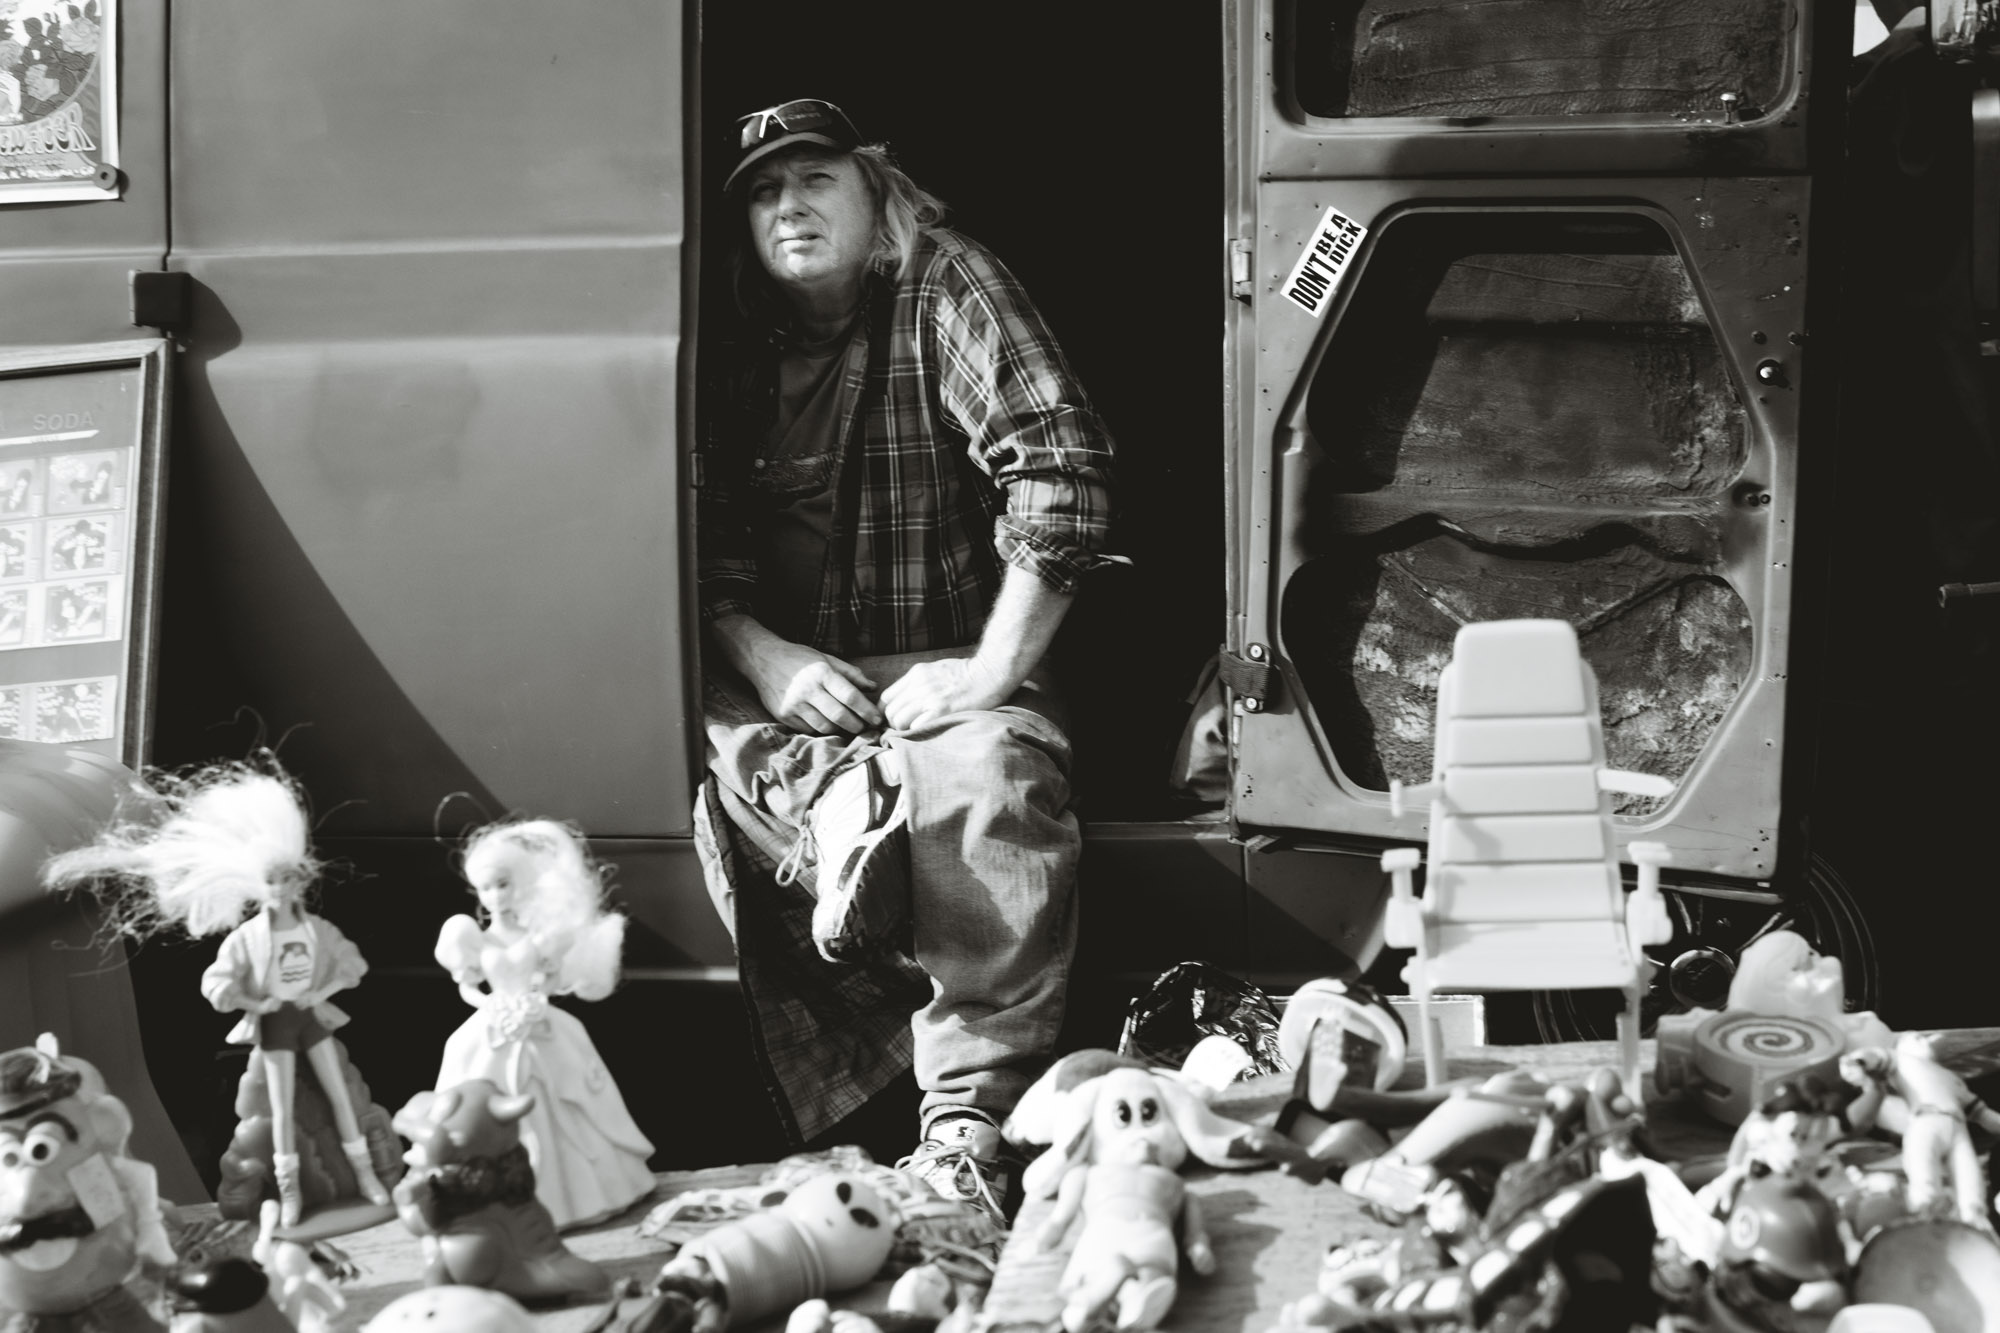 Man sitting in van at Long Beach Antique Swap Meet